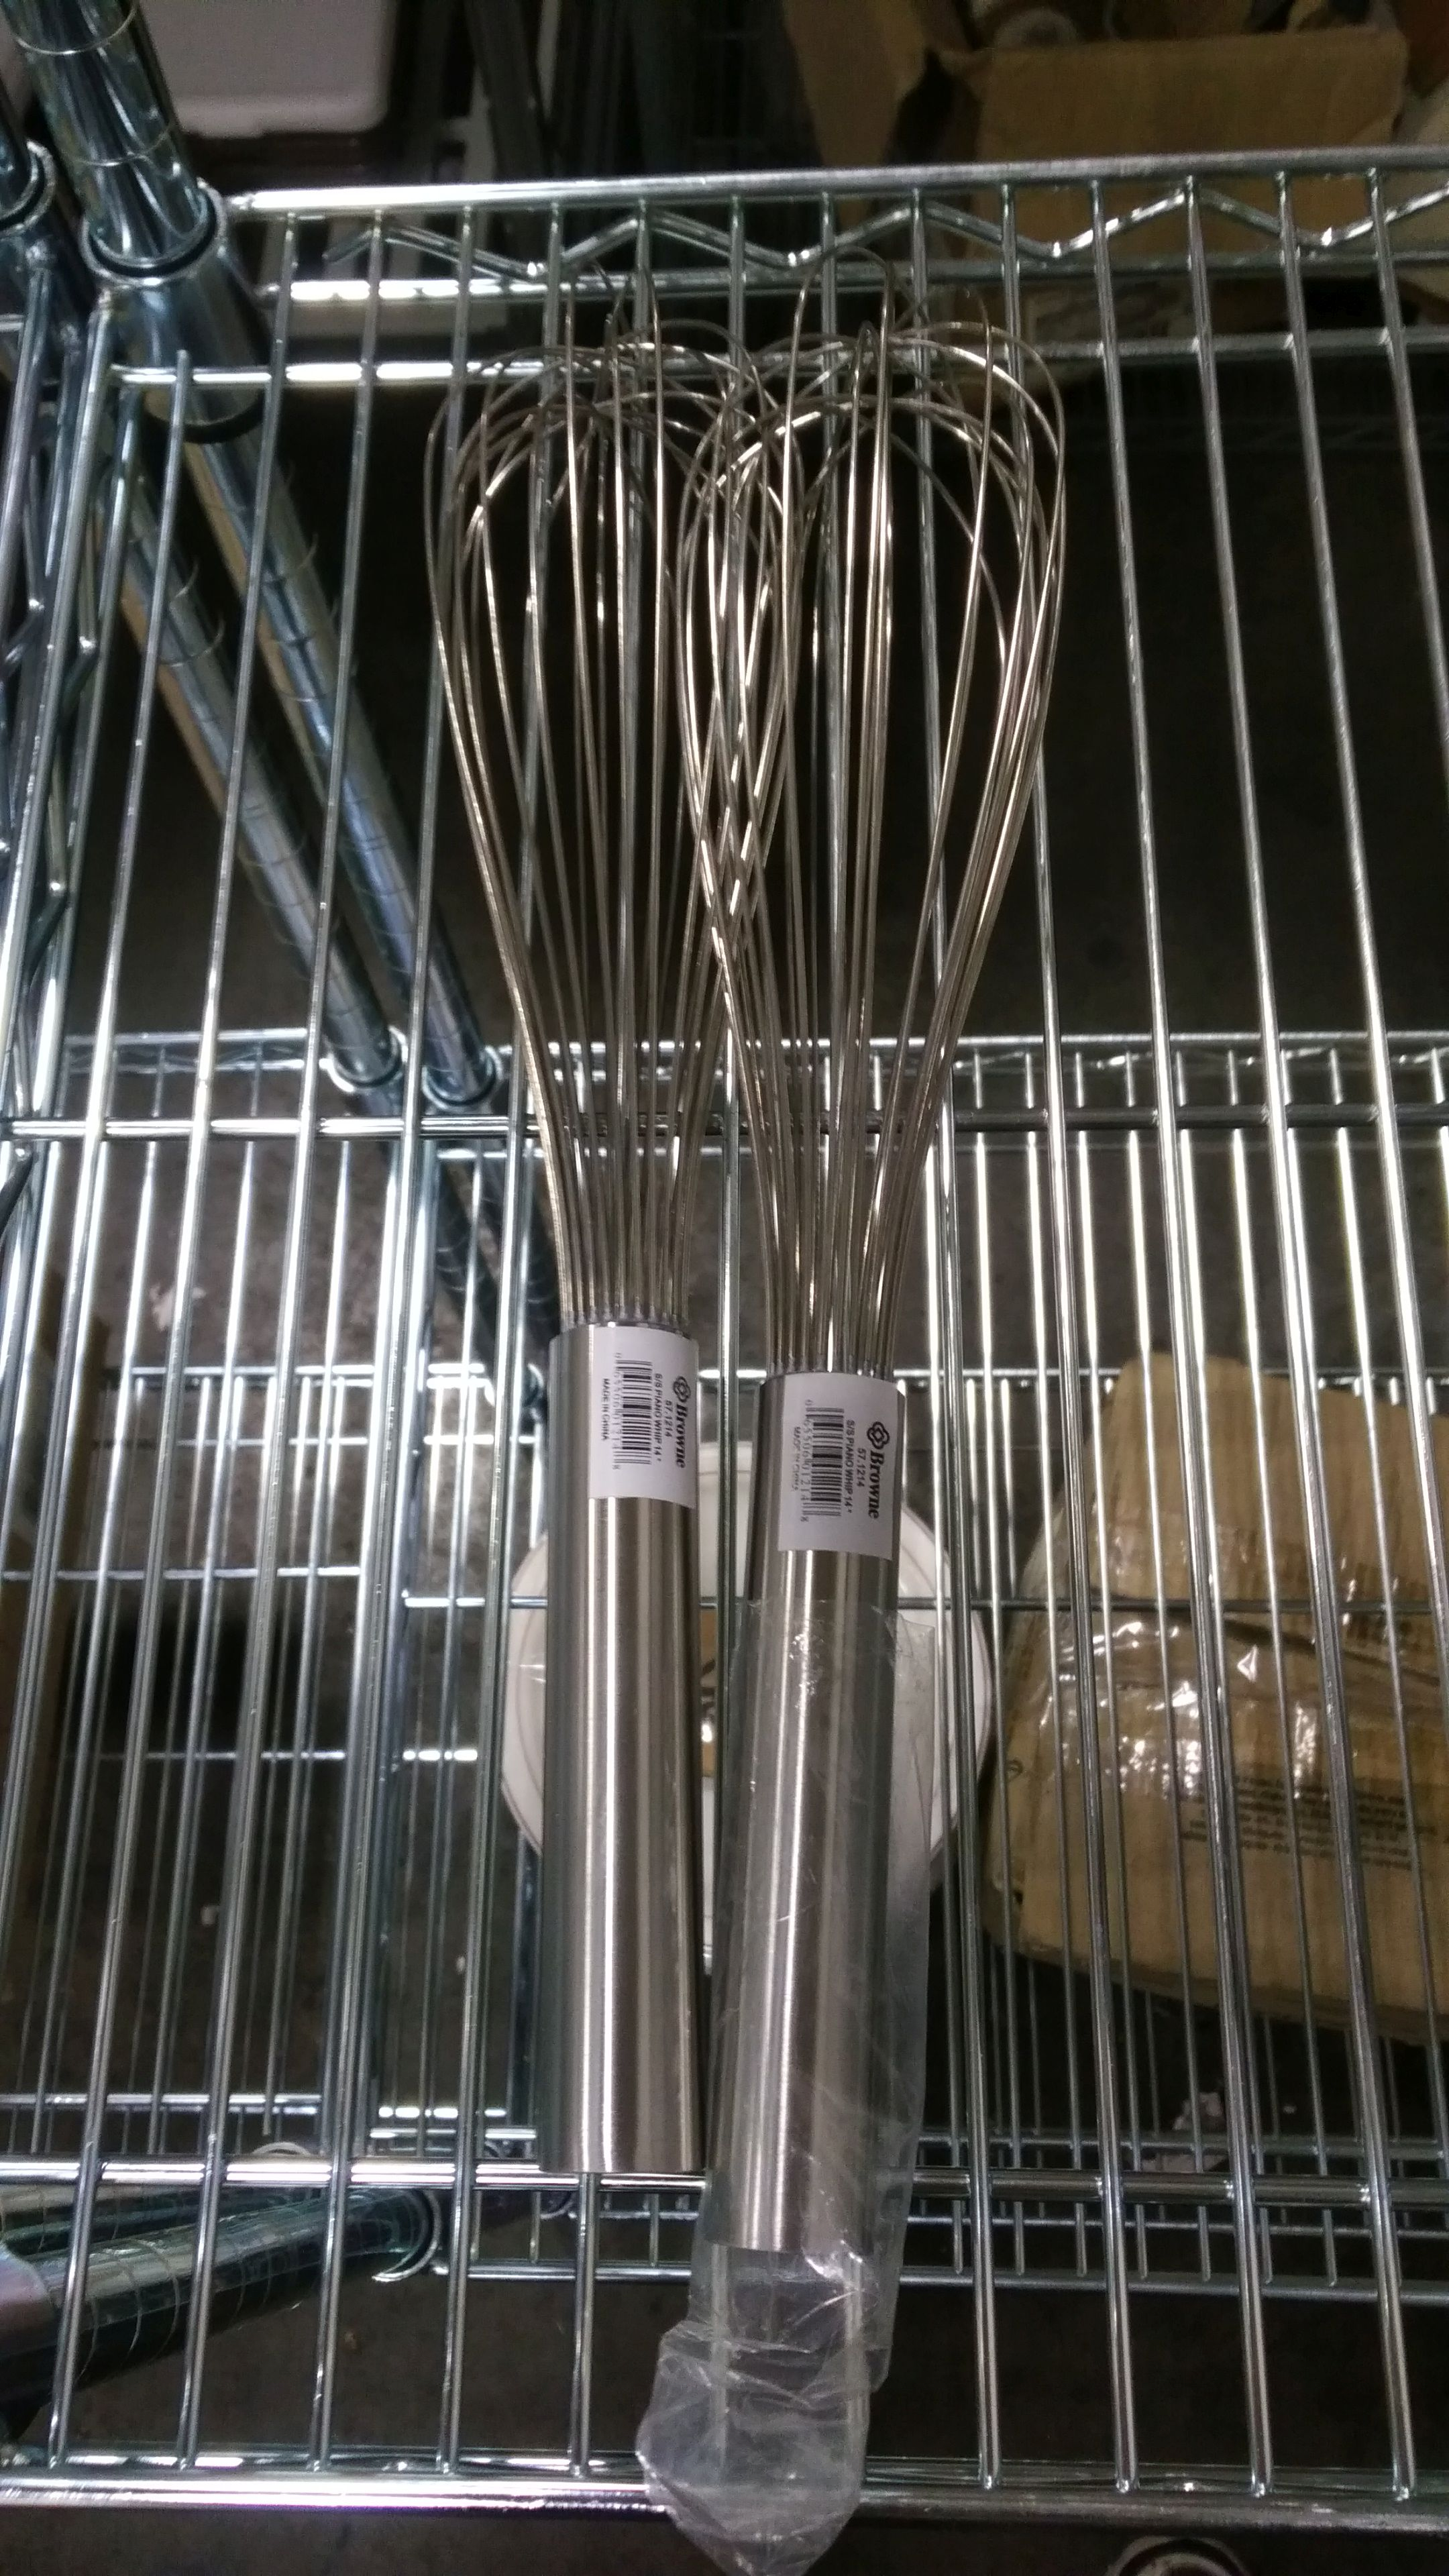 """Lot 20 - Browne 14"""" Stainless Piano Whips - Lot of 2"""